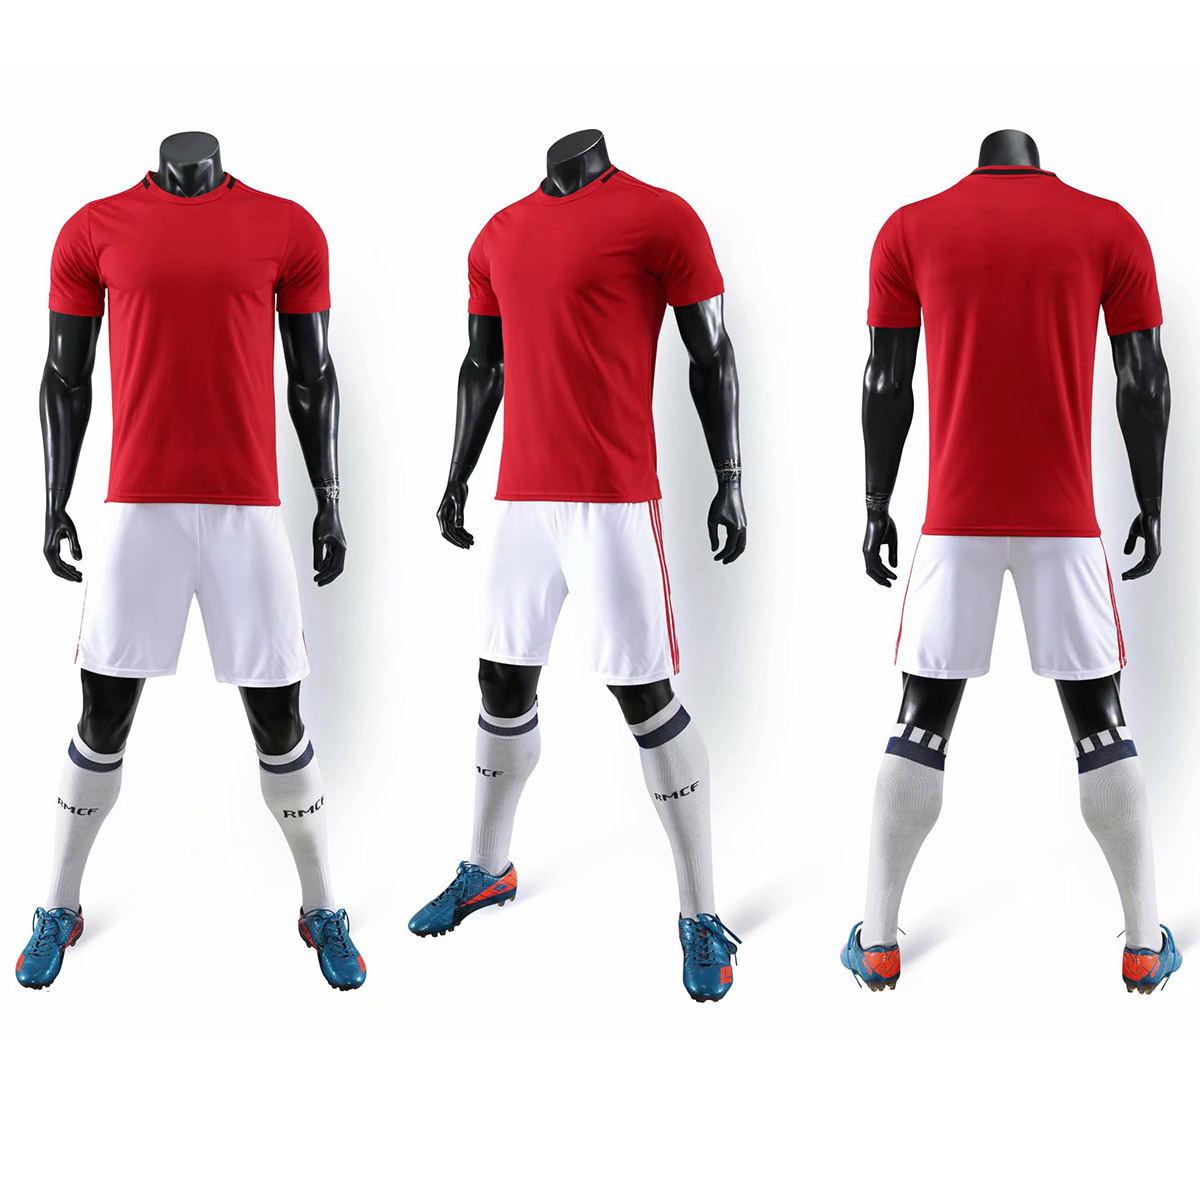 19 20 new national team football jersey logo custom football jersey uniform suit men 39 s soccer set custom name number in Soccer Sets from Sports amp Entertainment